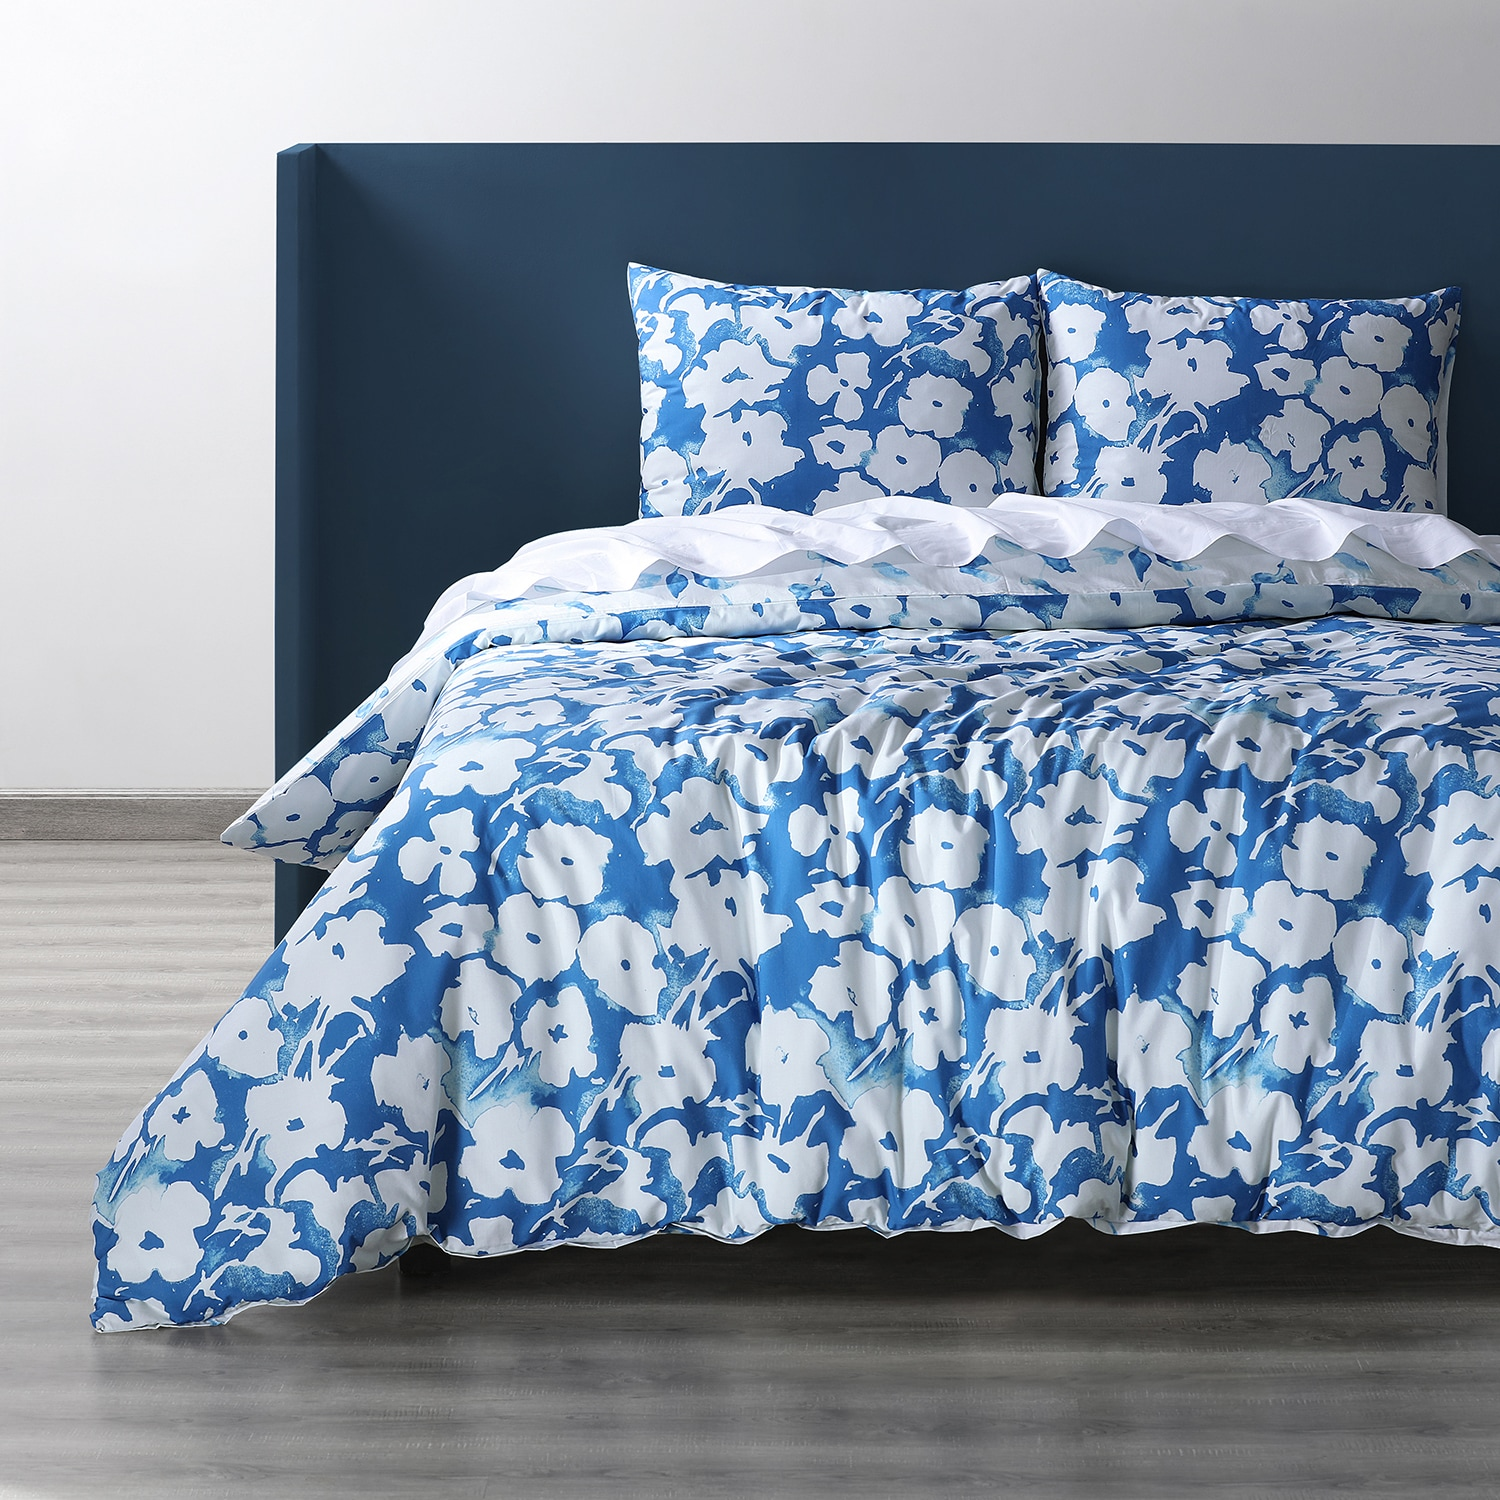 Van Gogh Ocean Blue Cotton Percale Printed Reversible Duvet Cover Set